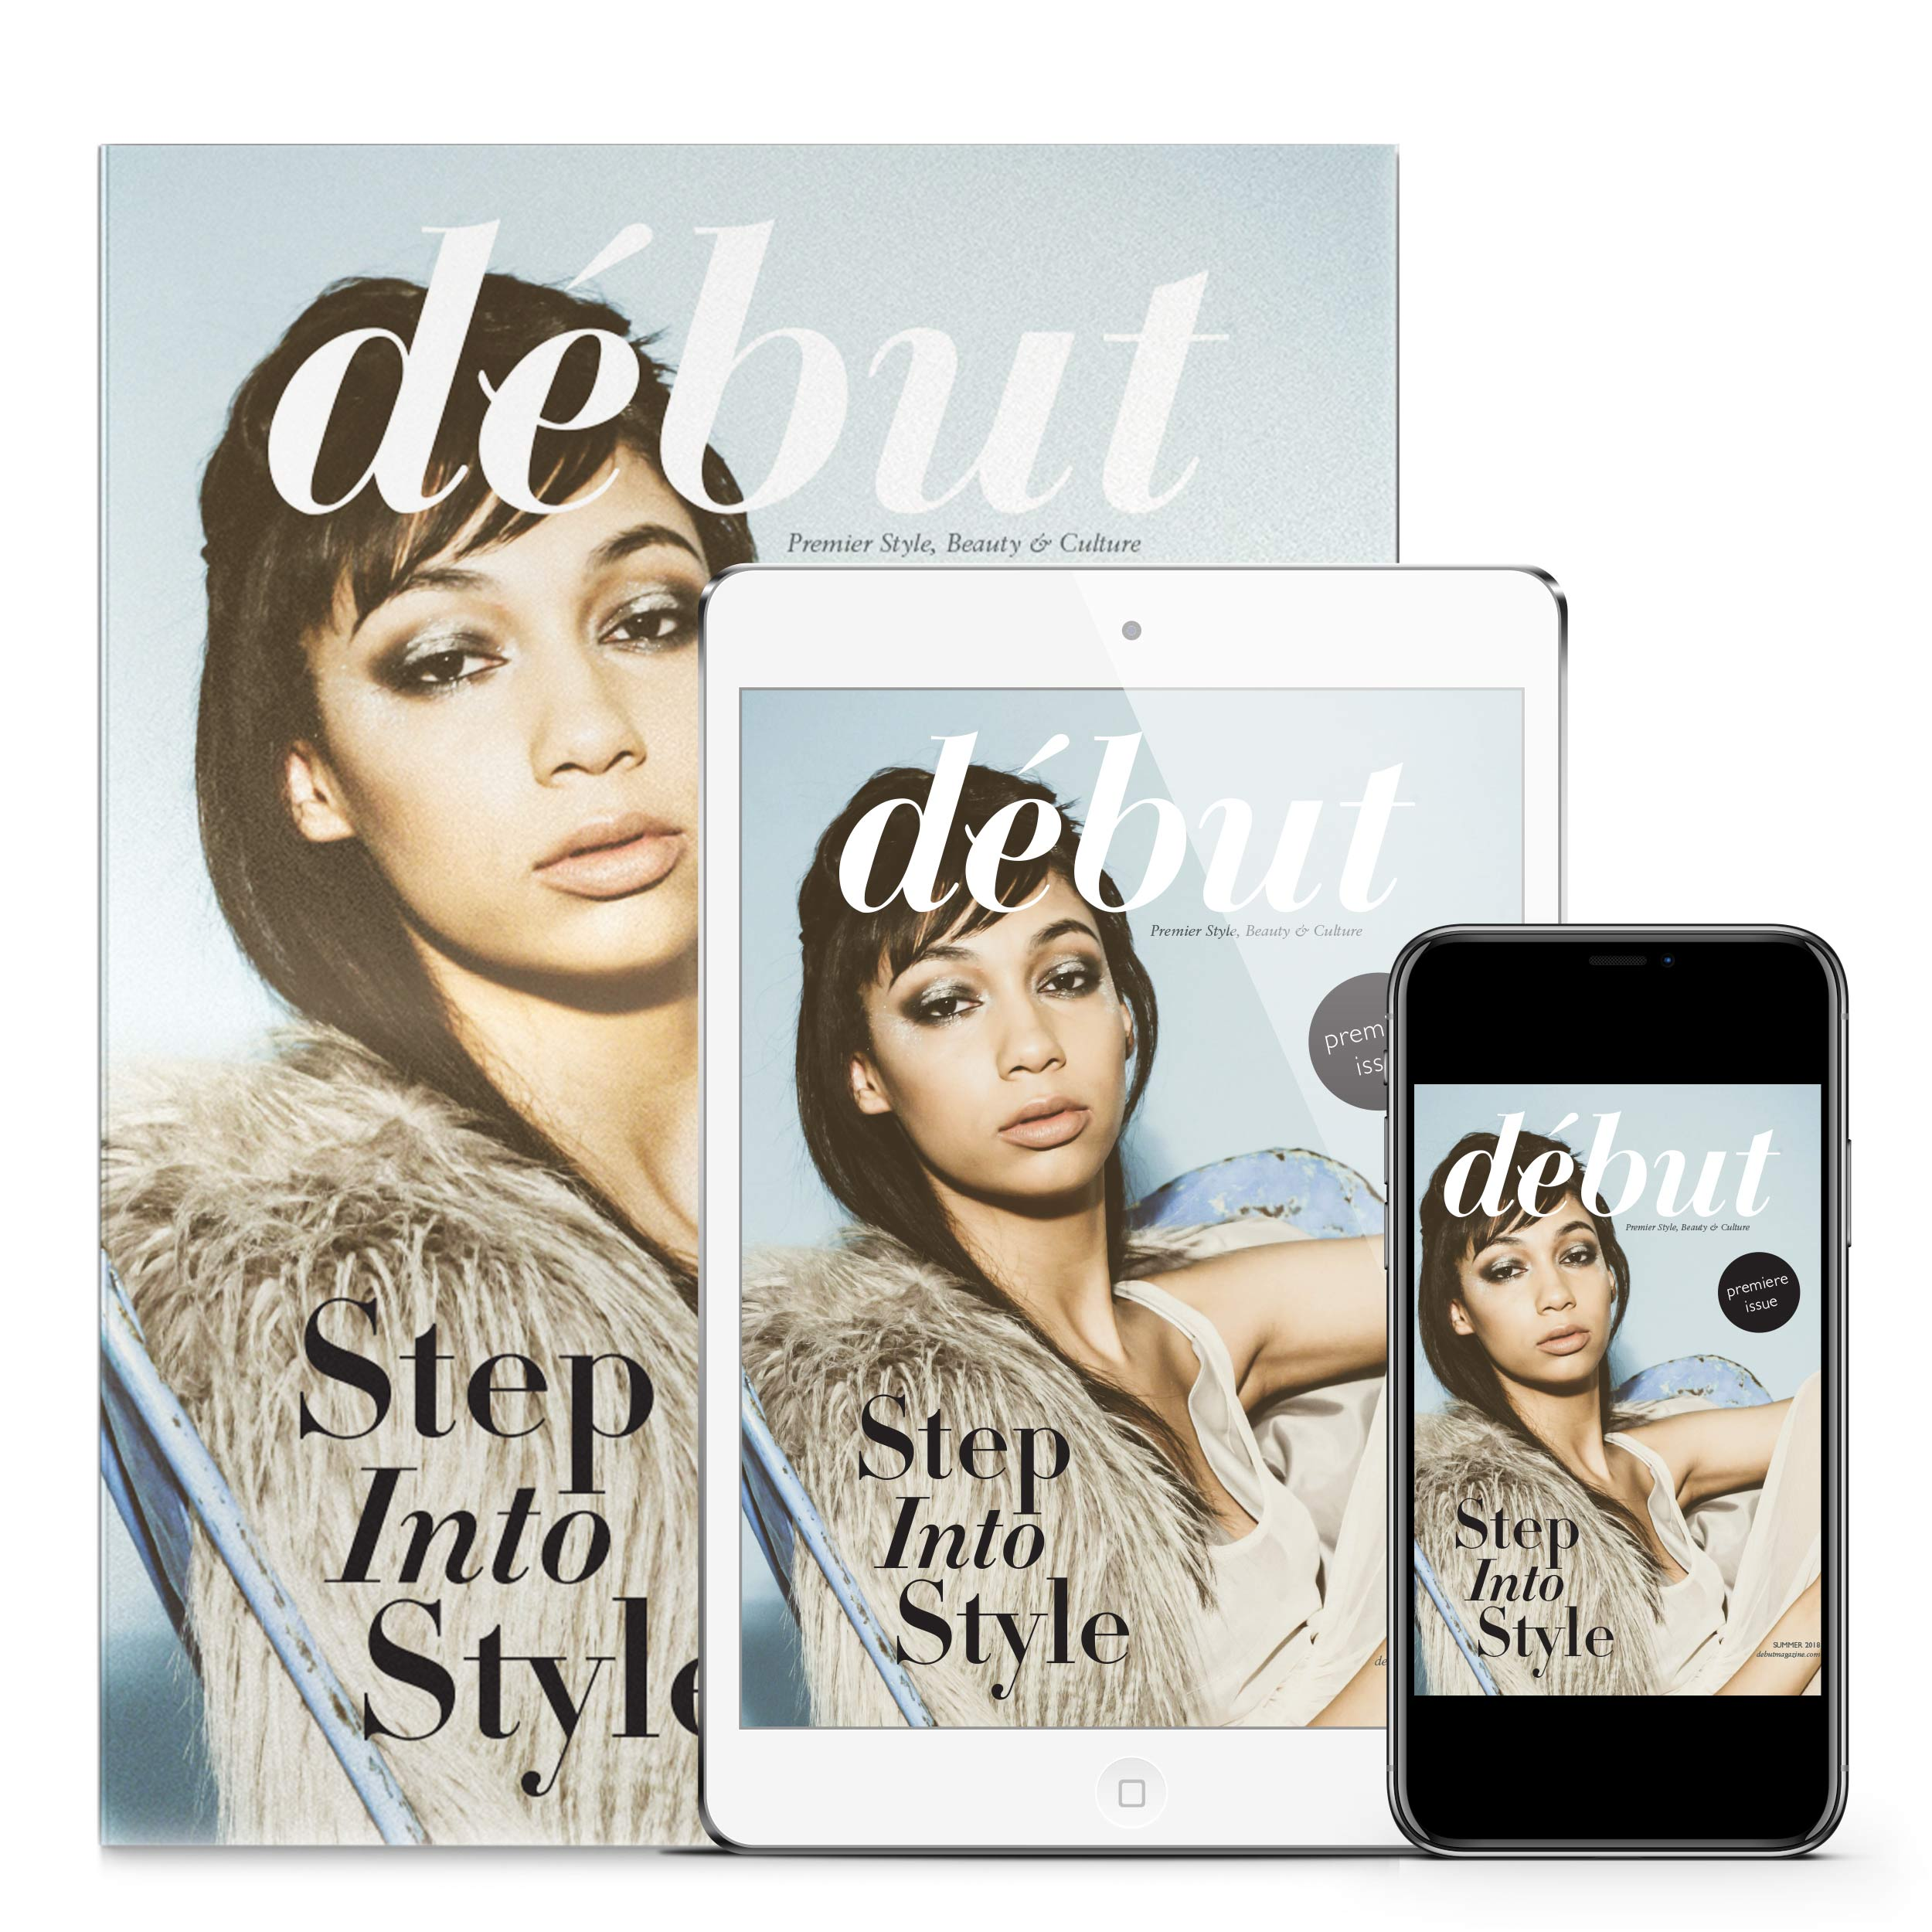 Debut-print+digital subscription-offer.jpg